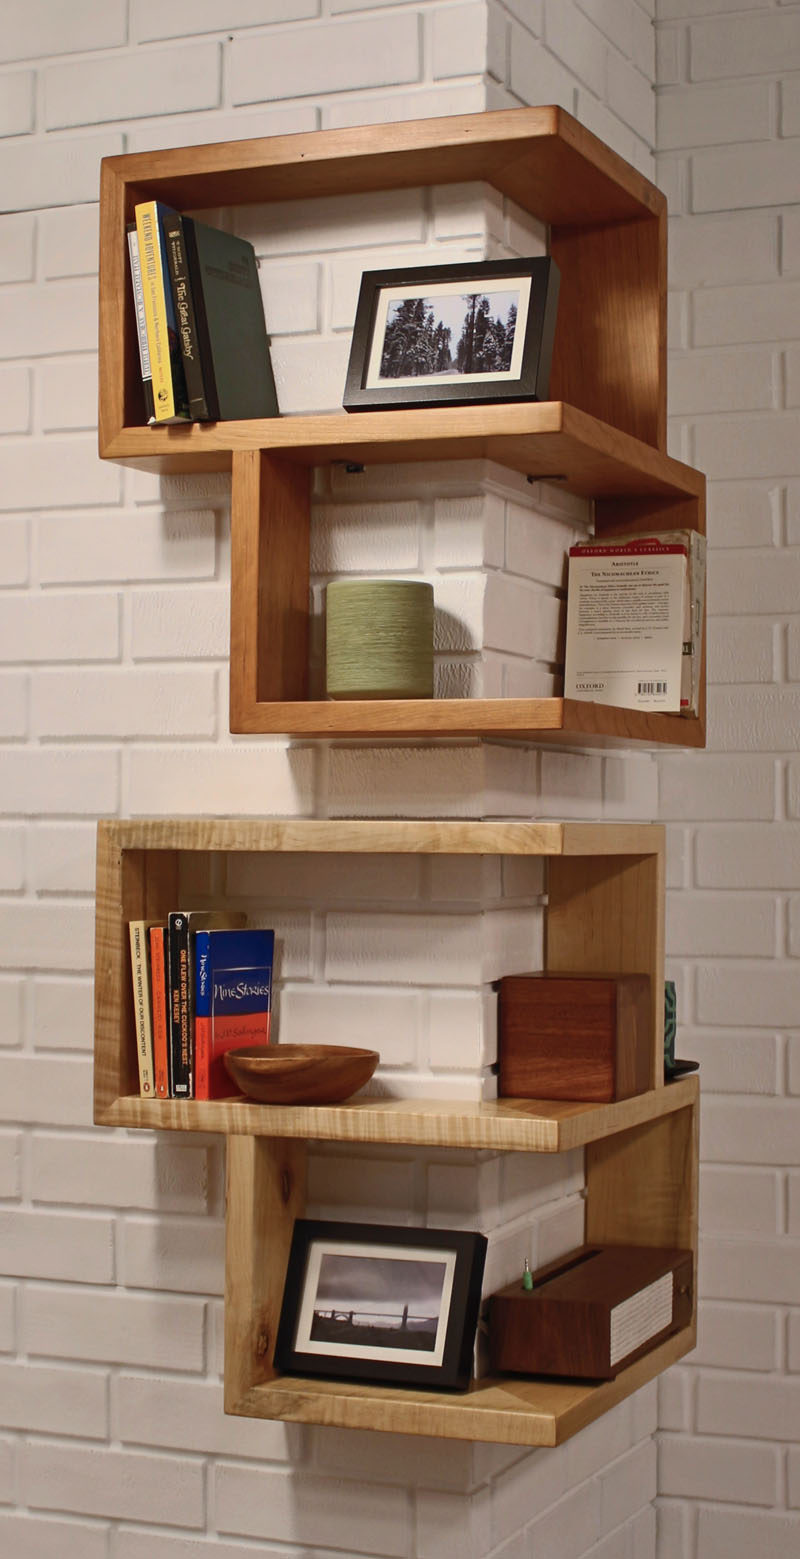 SHELVING IDEA - Shelves That Wrap Around Corners // These box shelves hug the corners of your walls and make awkward corners turn into functional storage and decor spaces.